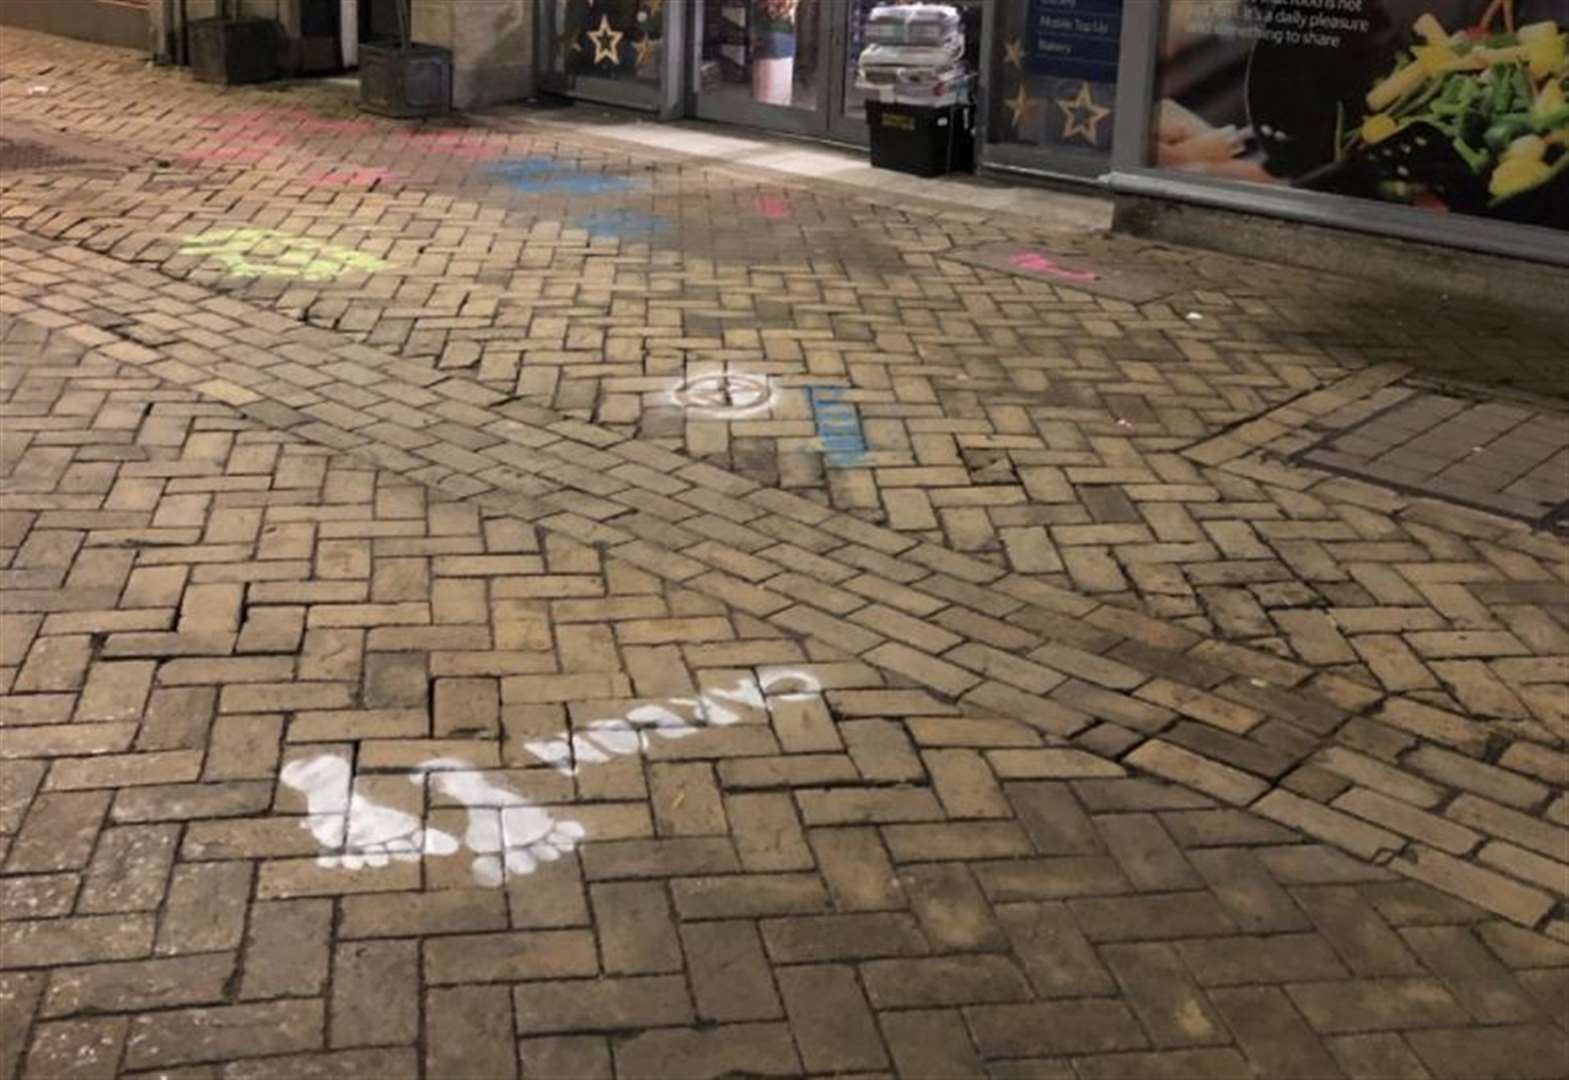 Carbon footprints painted in high street